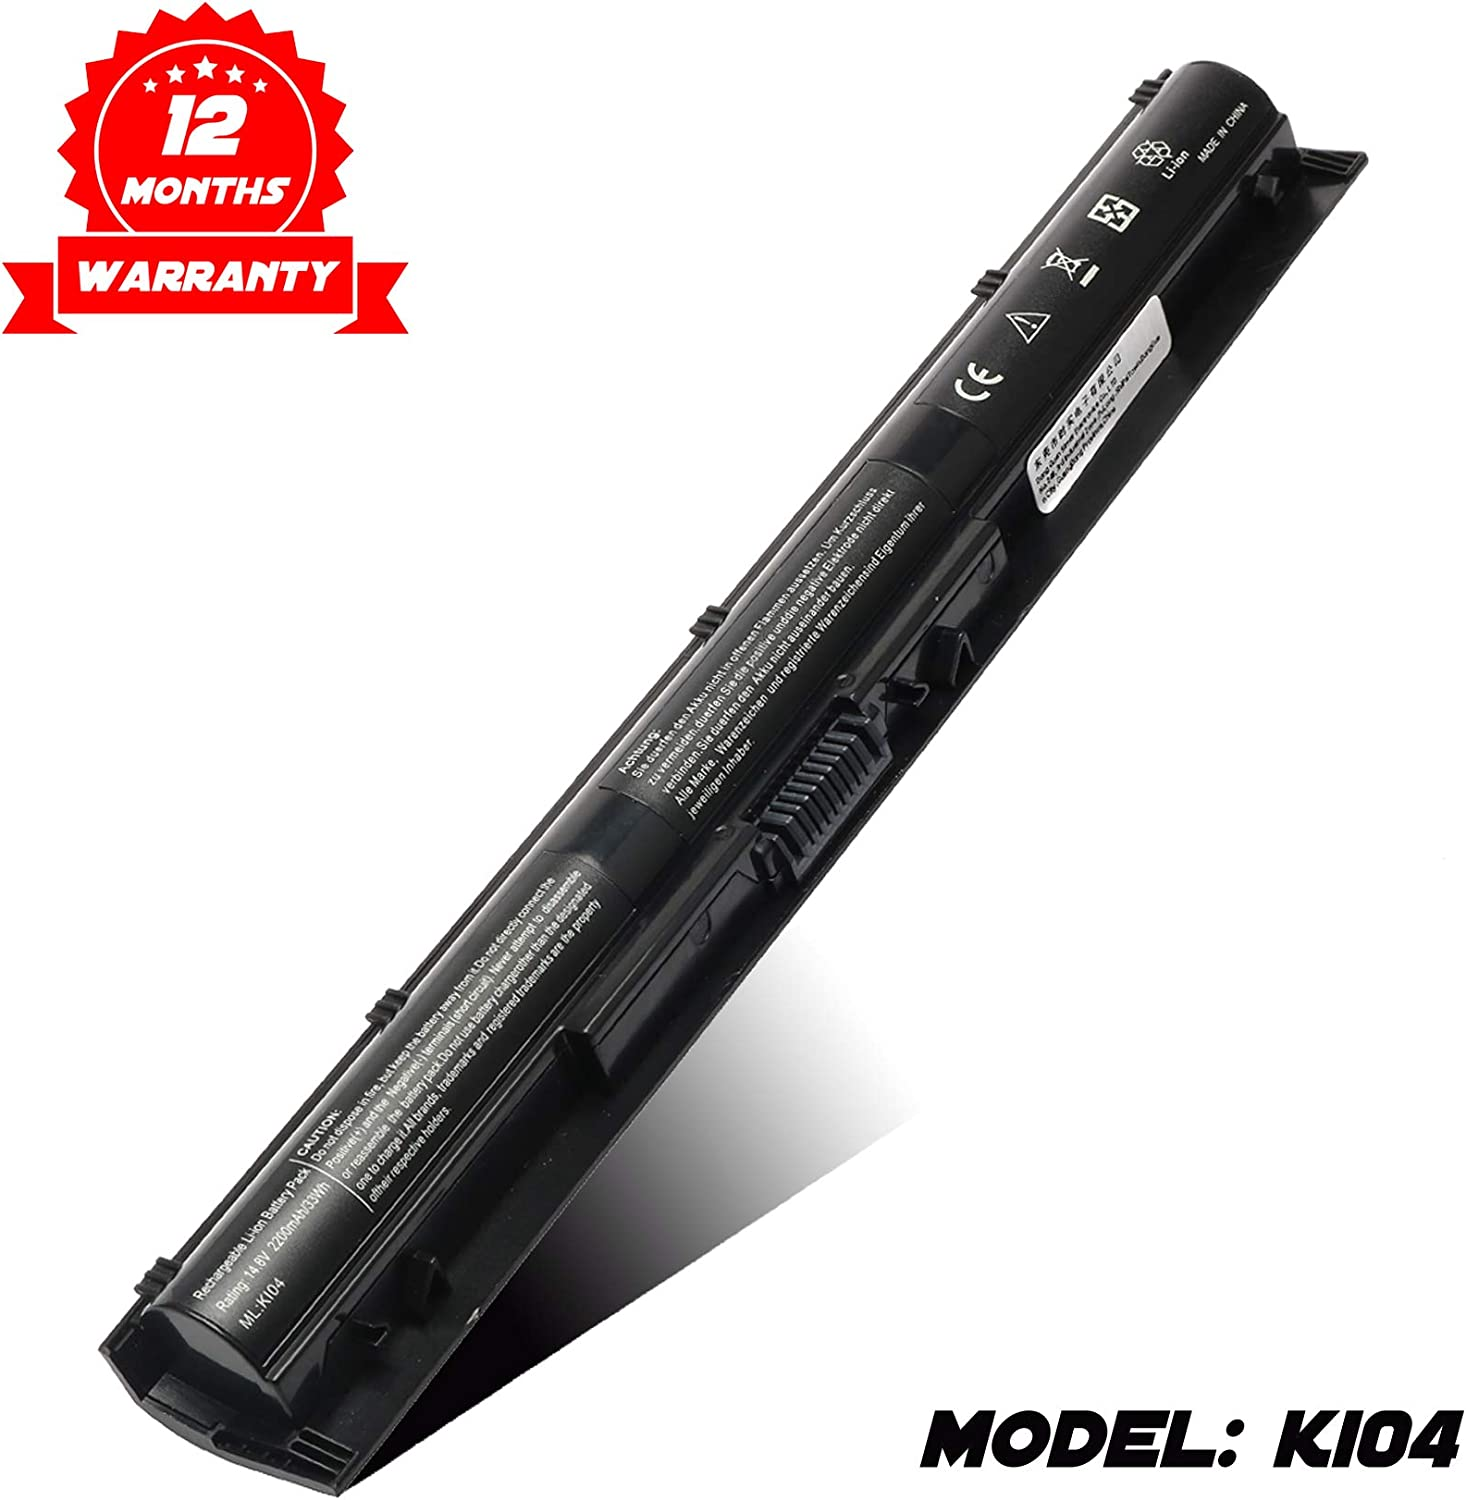 K104 Notebook Battery for HP Pavilion 14-ab 14T-ab 15-ab 15-an 15T-ab 17-g Series Laptop fits KI04 Spare 800049-001 800050-001 800009-421 800010-421 HSTNN-LB6S HSTNN-LB6R TPN-Q158 Q159 Q160